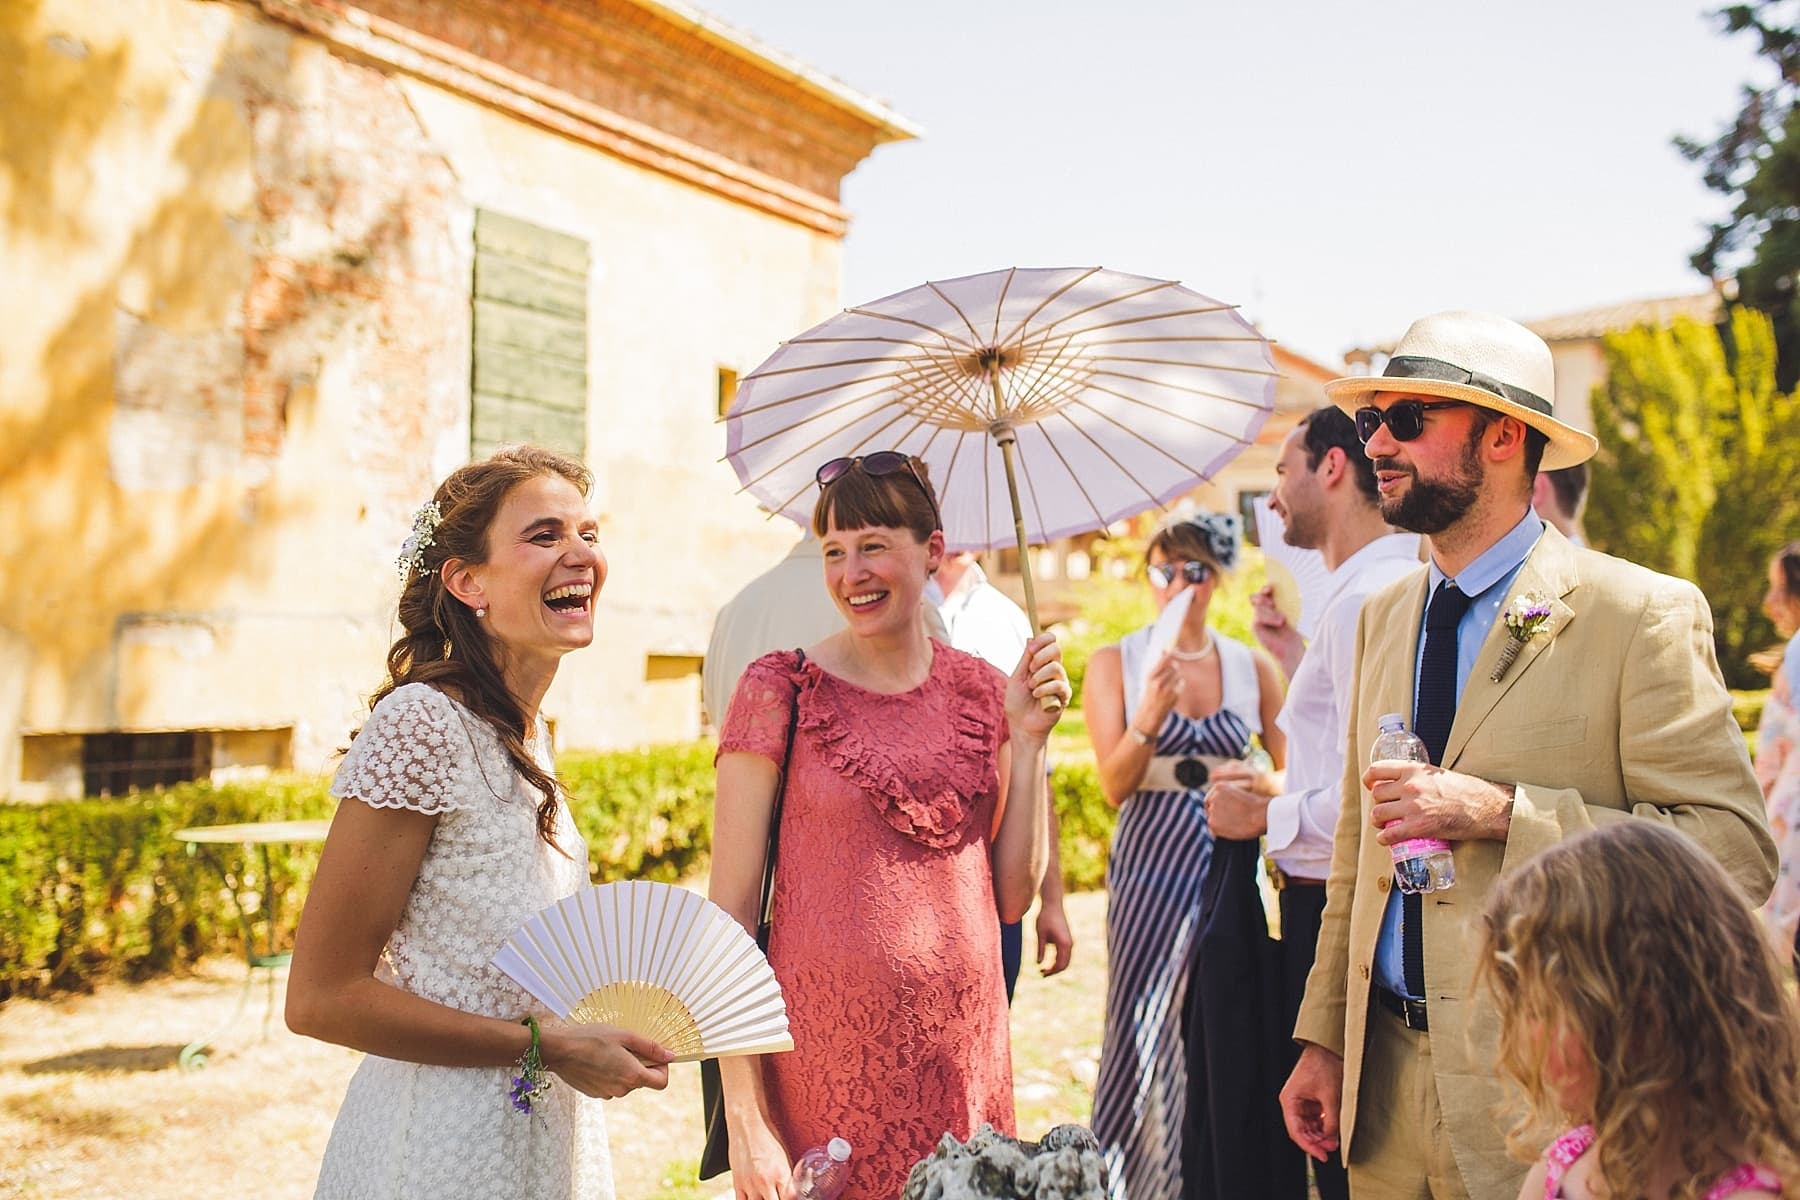 Tenuta La Fratta Outdoor Wedding Ceremony,Sienna Wedding Photographer,